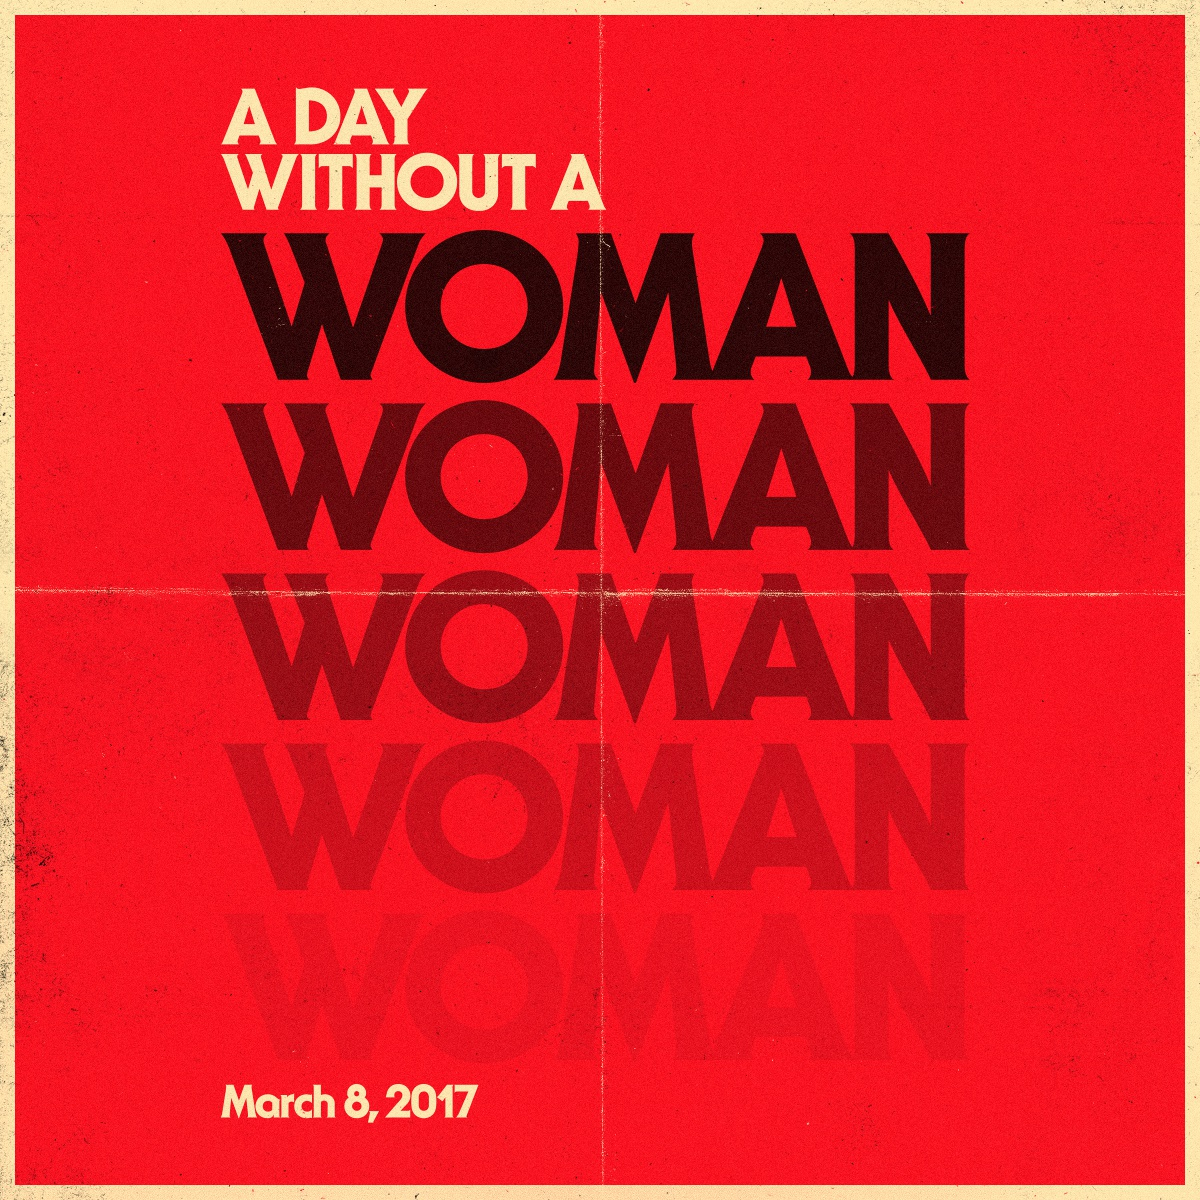 Let's celebrate the International Women's Day